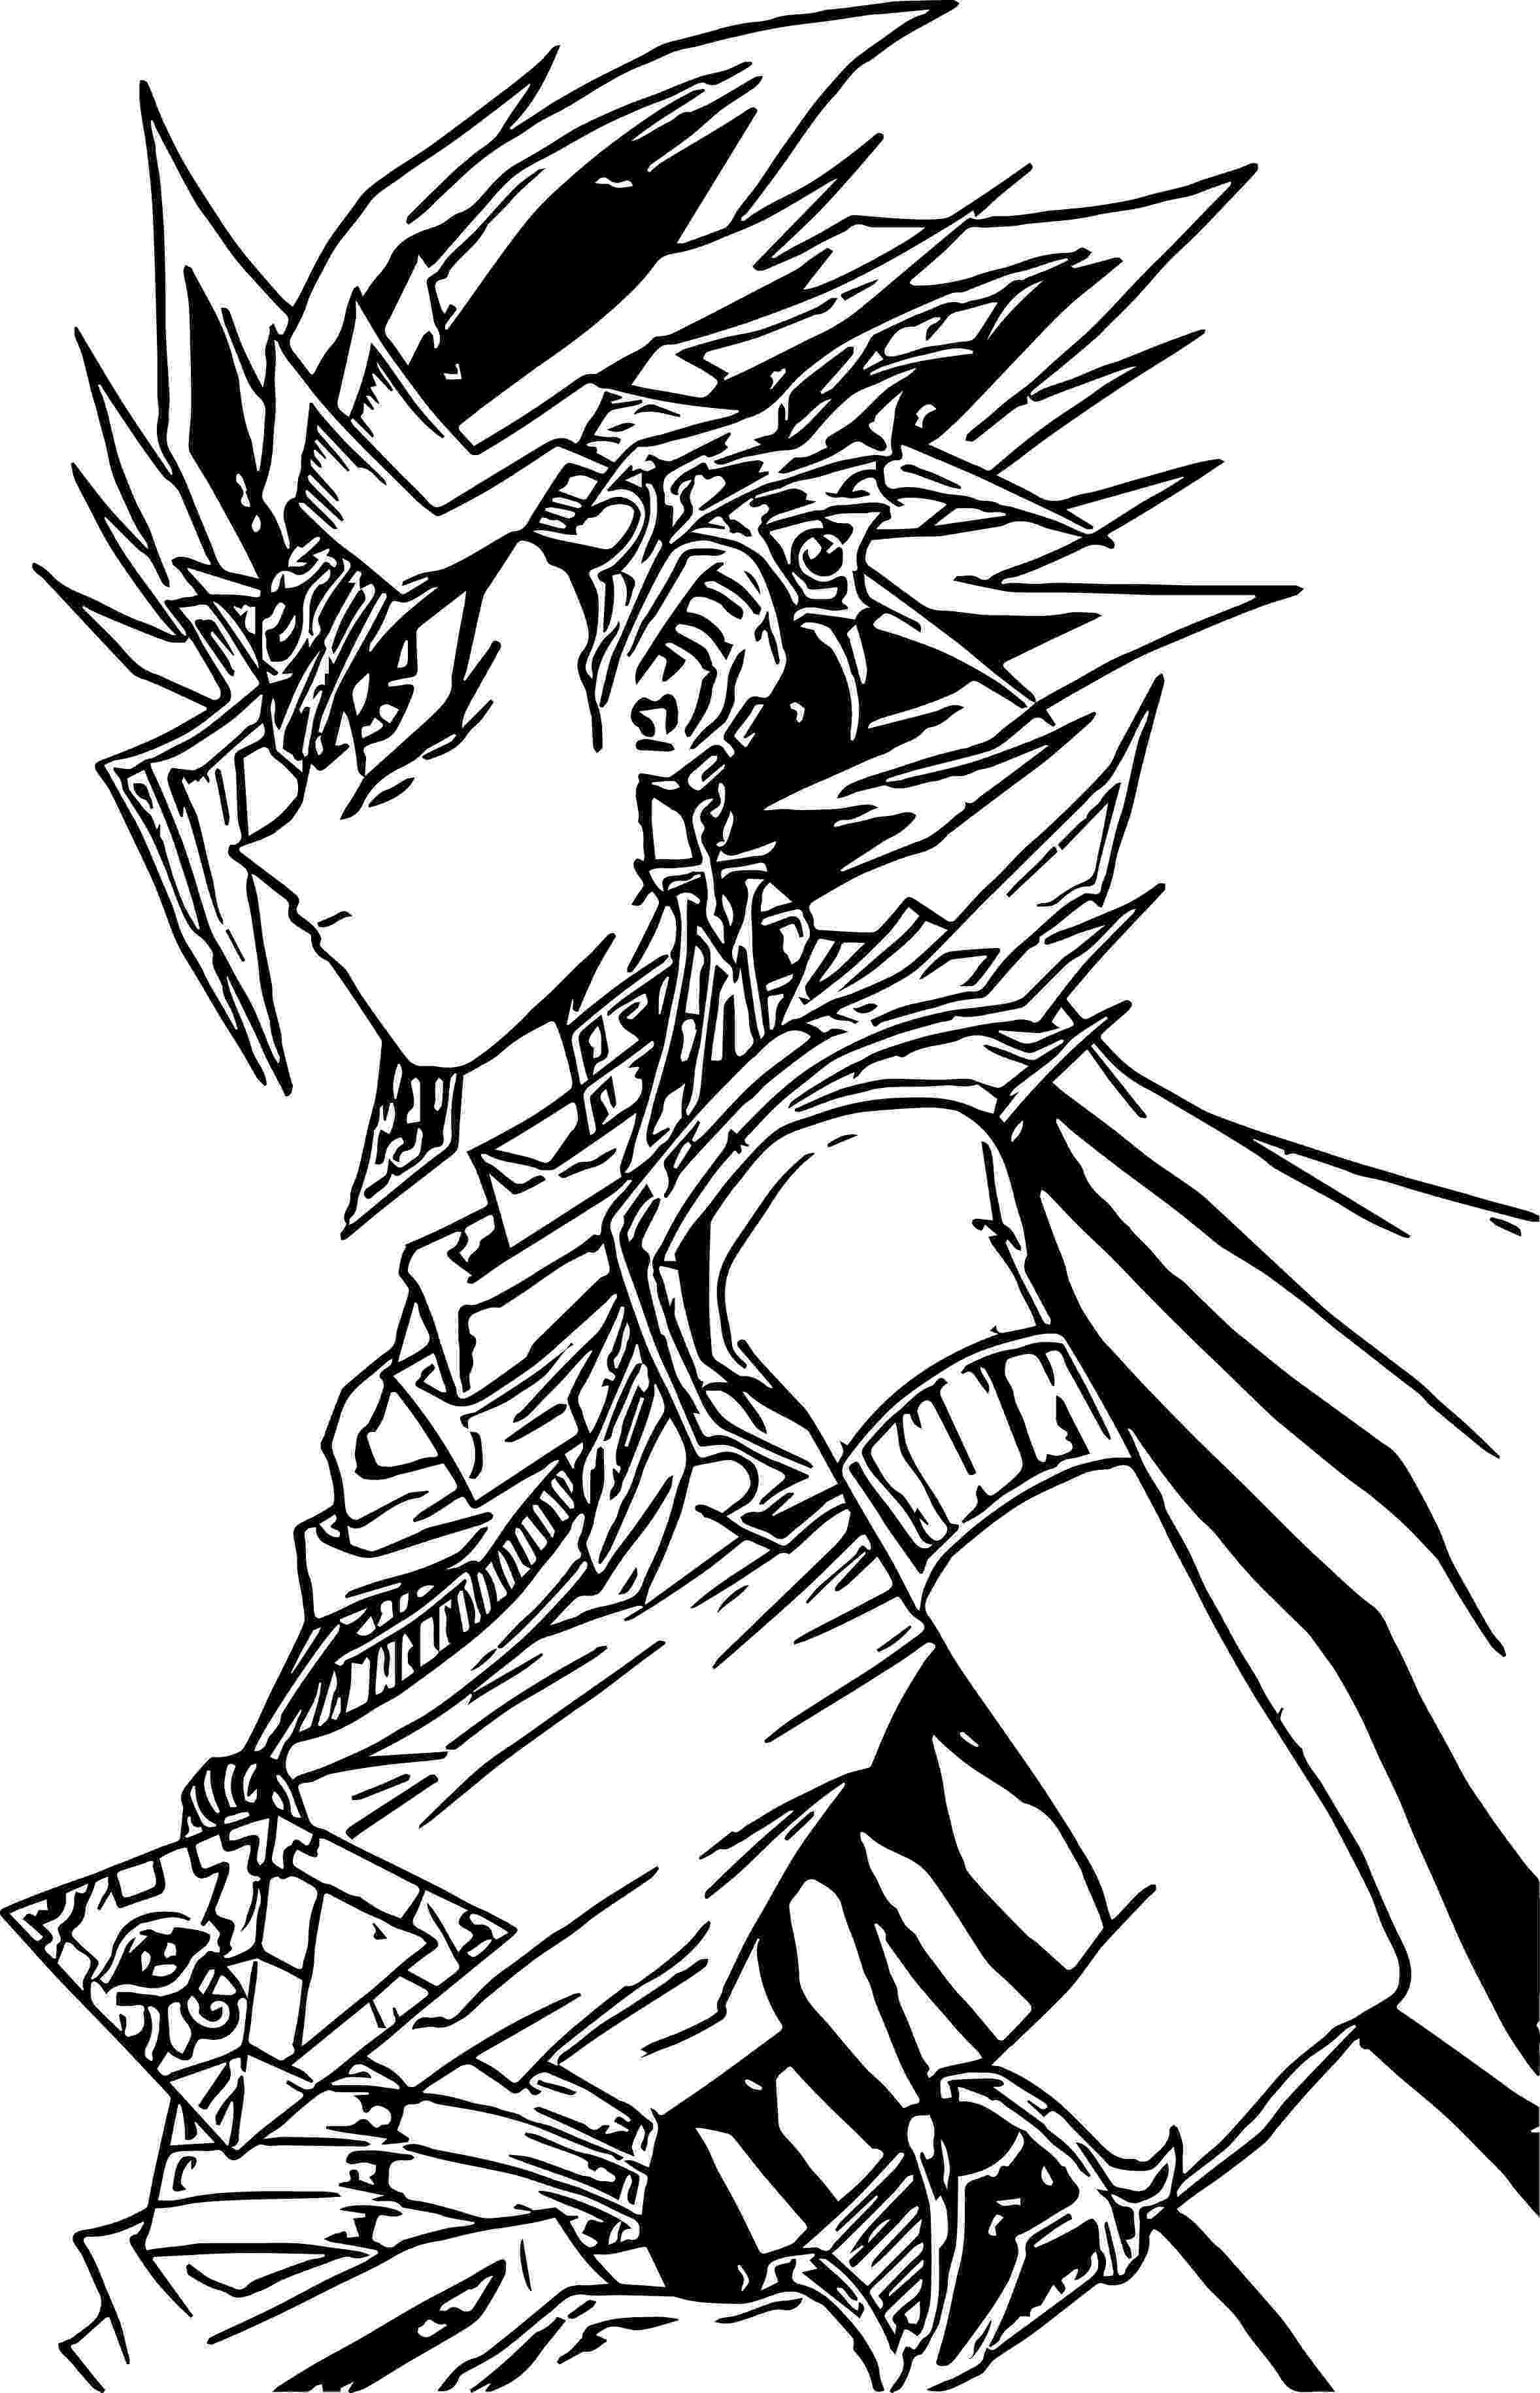 coloring pages yugioh yugioh coloring pages free download on clipartmag yugioh pages coloring 1 1